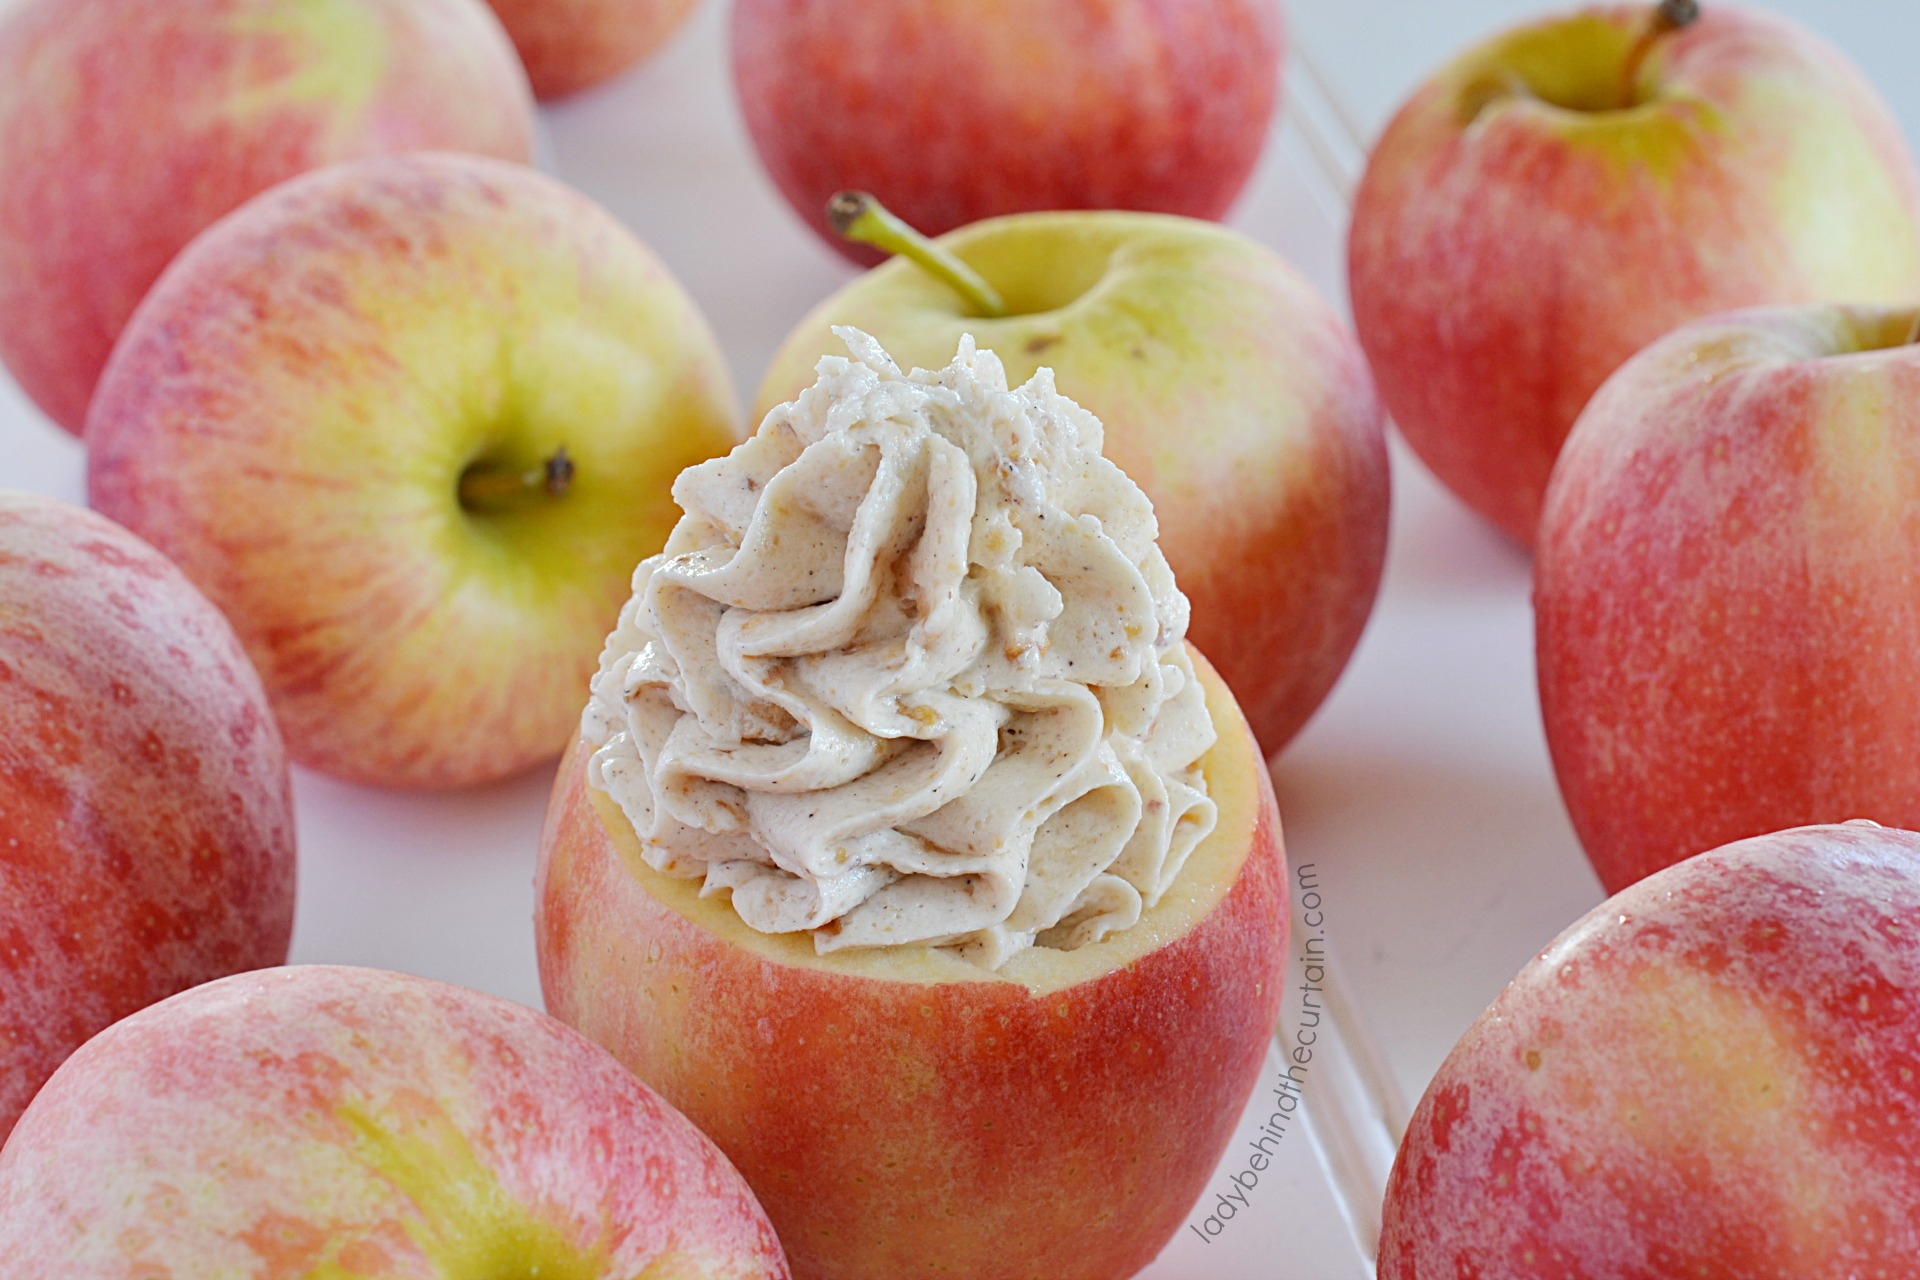 Apple Cinnamon Cream Cheese Butter Frosting